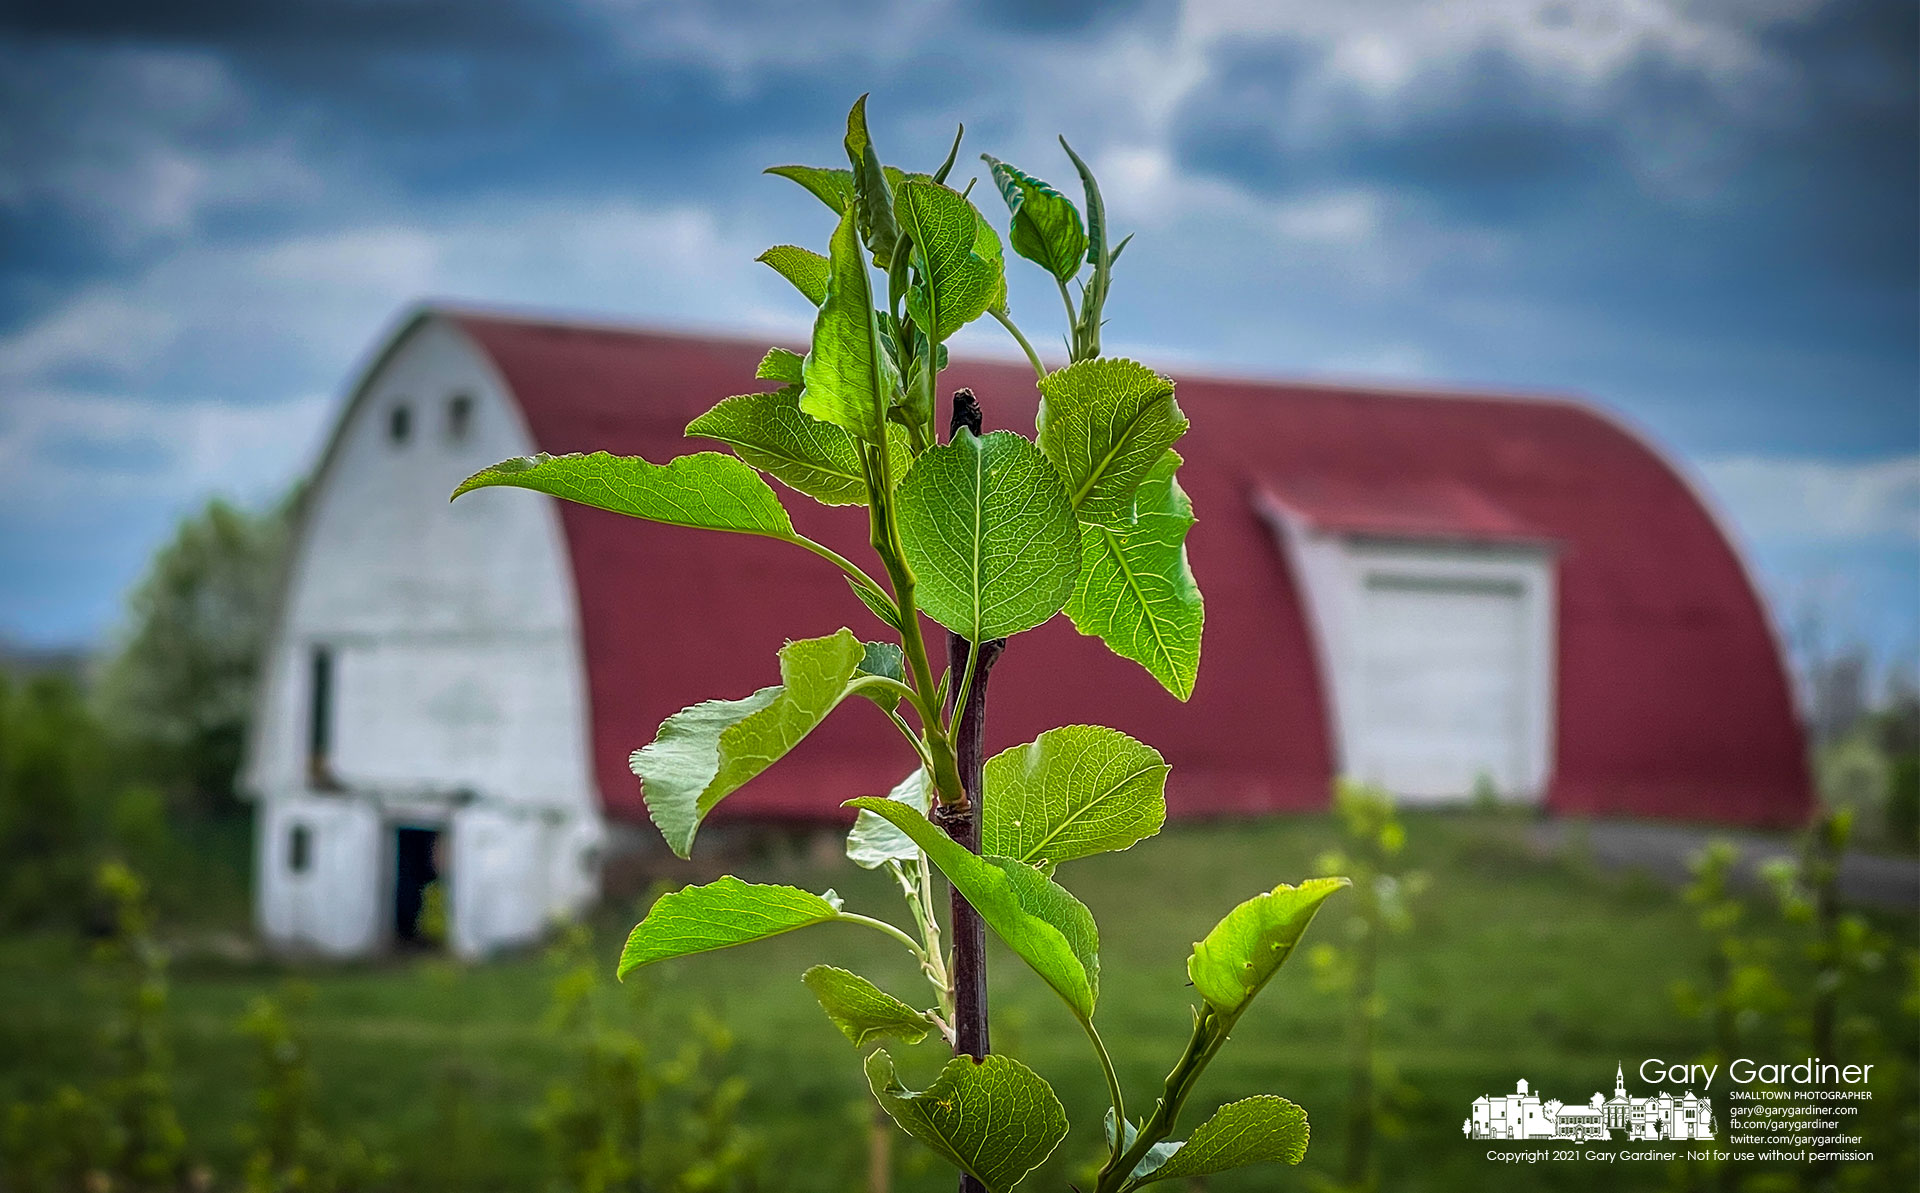 A Callery pear tree grows along with several hundred more in the fields at the Braun Farm as farmers wait for warmer and drier weather to plant this year's crops. My Final Photo for April 12, 2021.